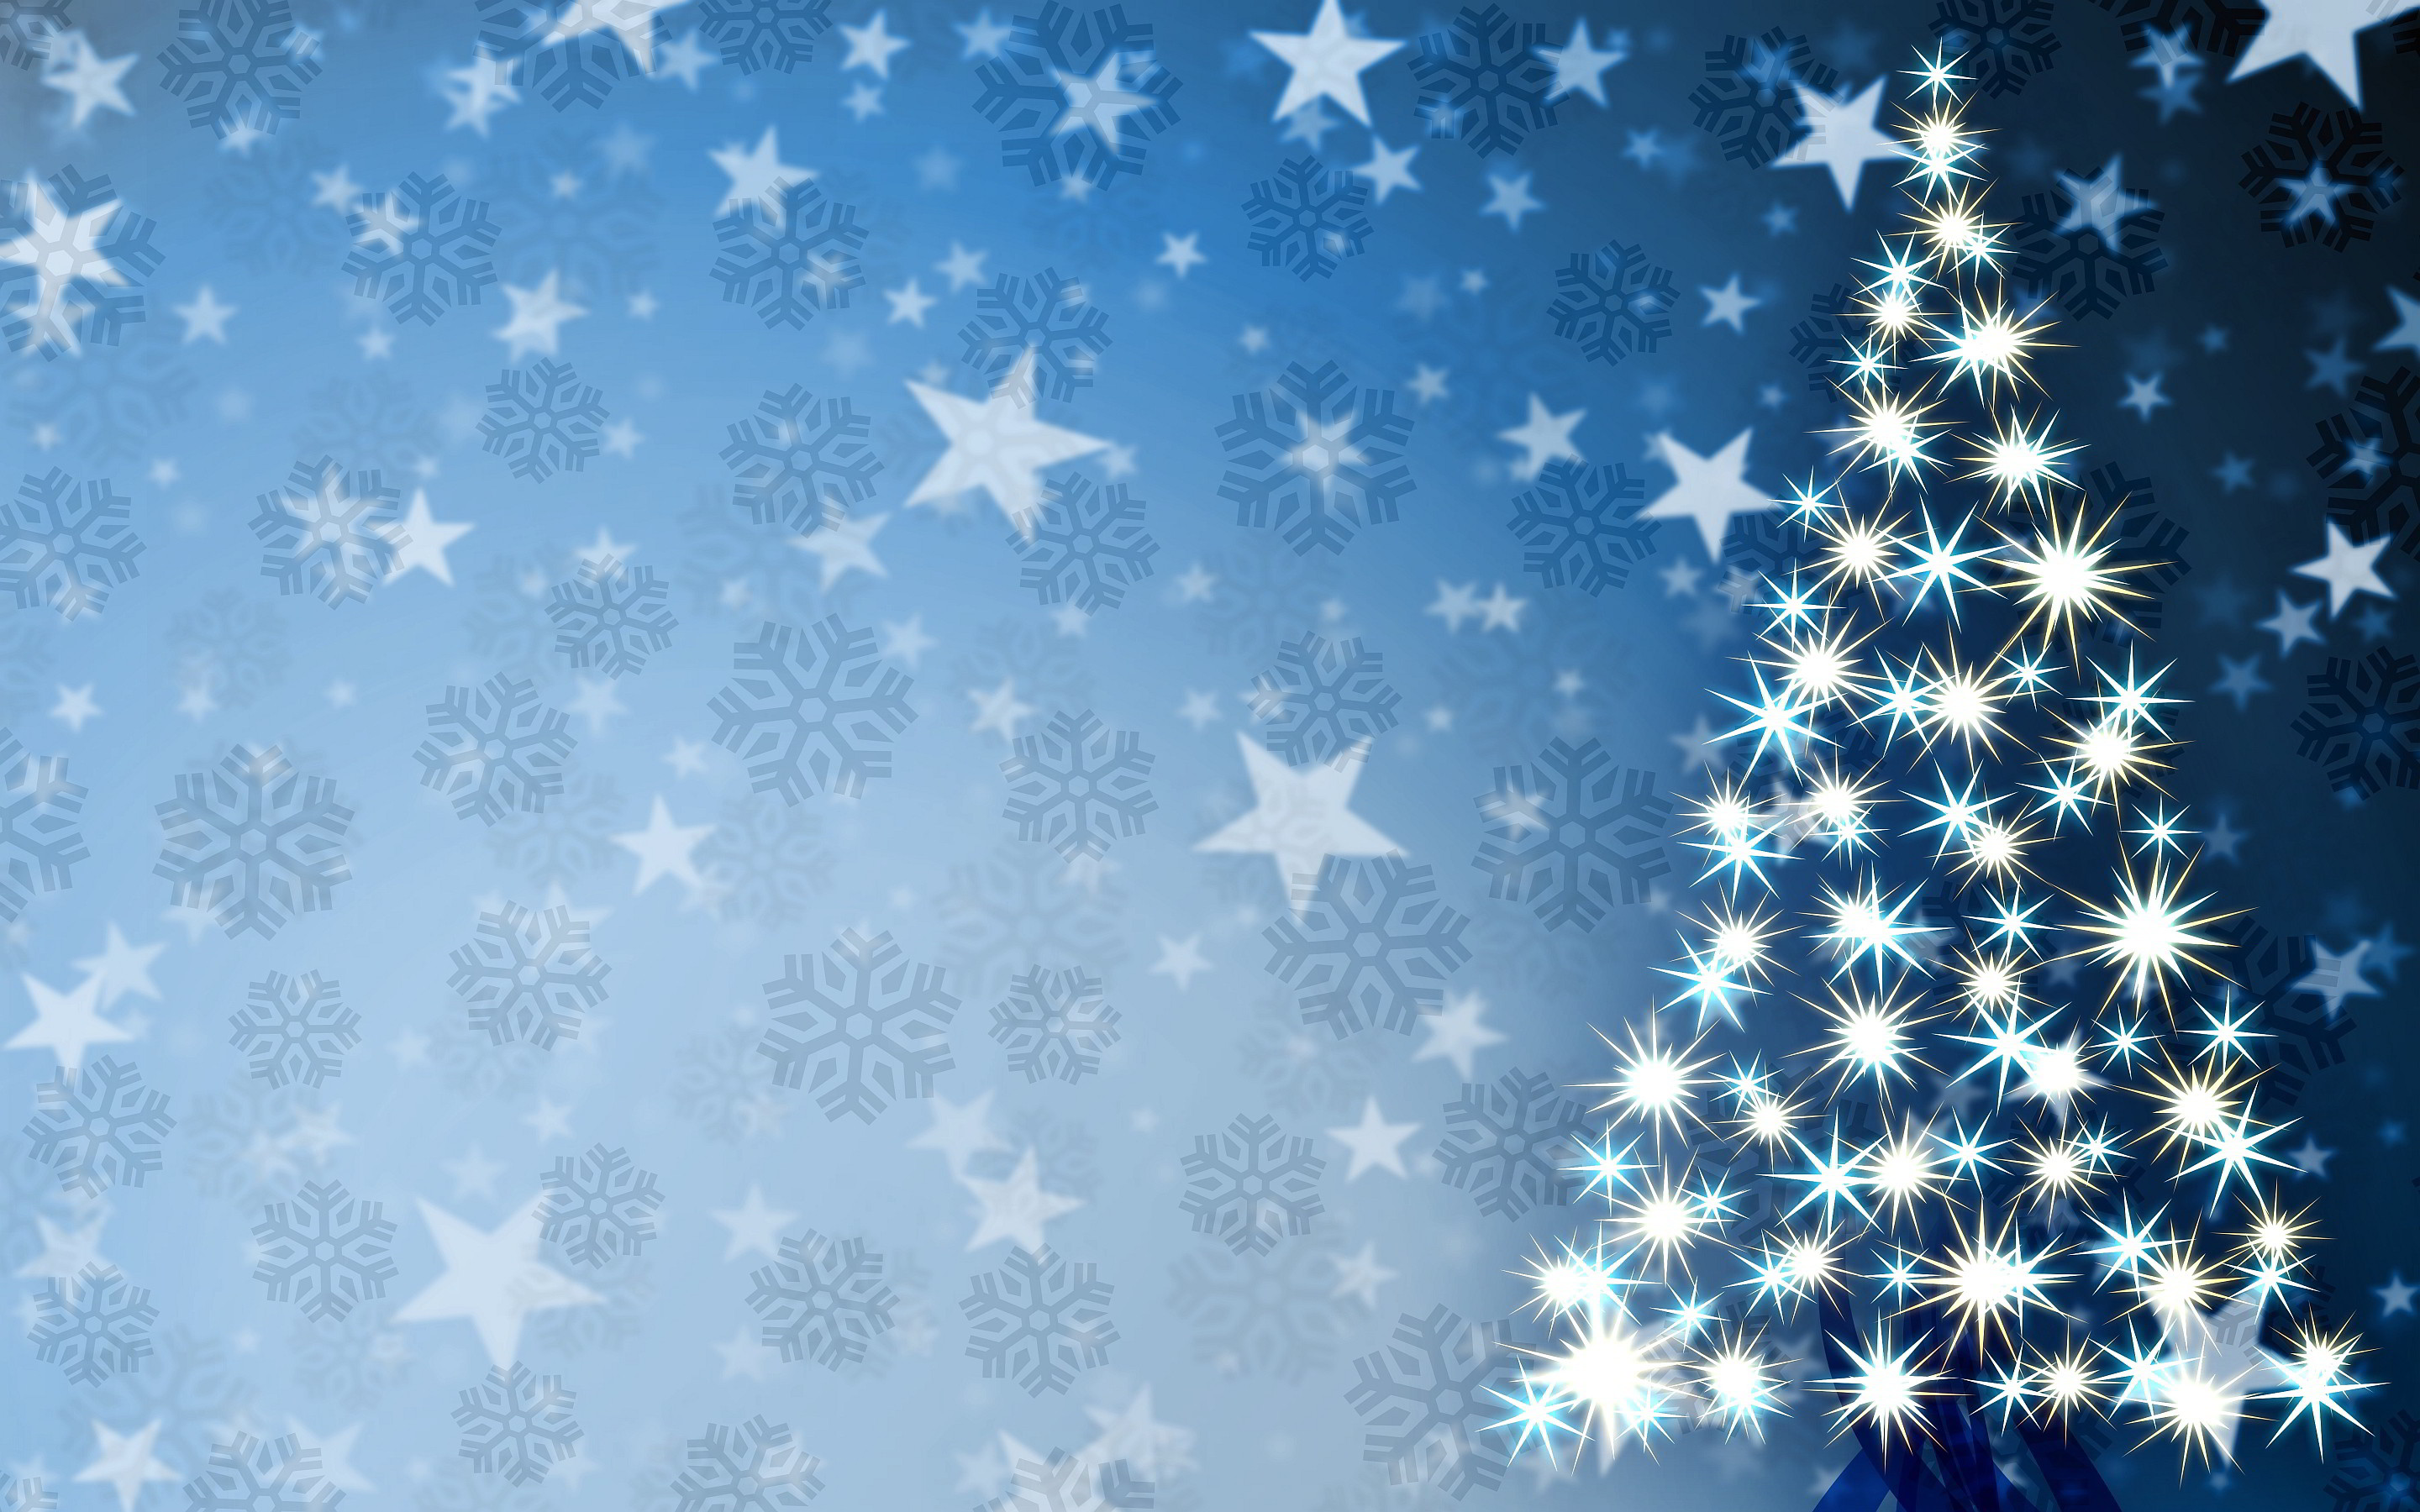 Free Christmas Wallpaper Backgrounds.Christmas Backgrounds 62 Pictures